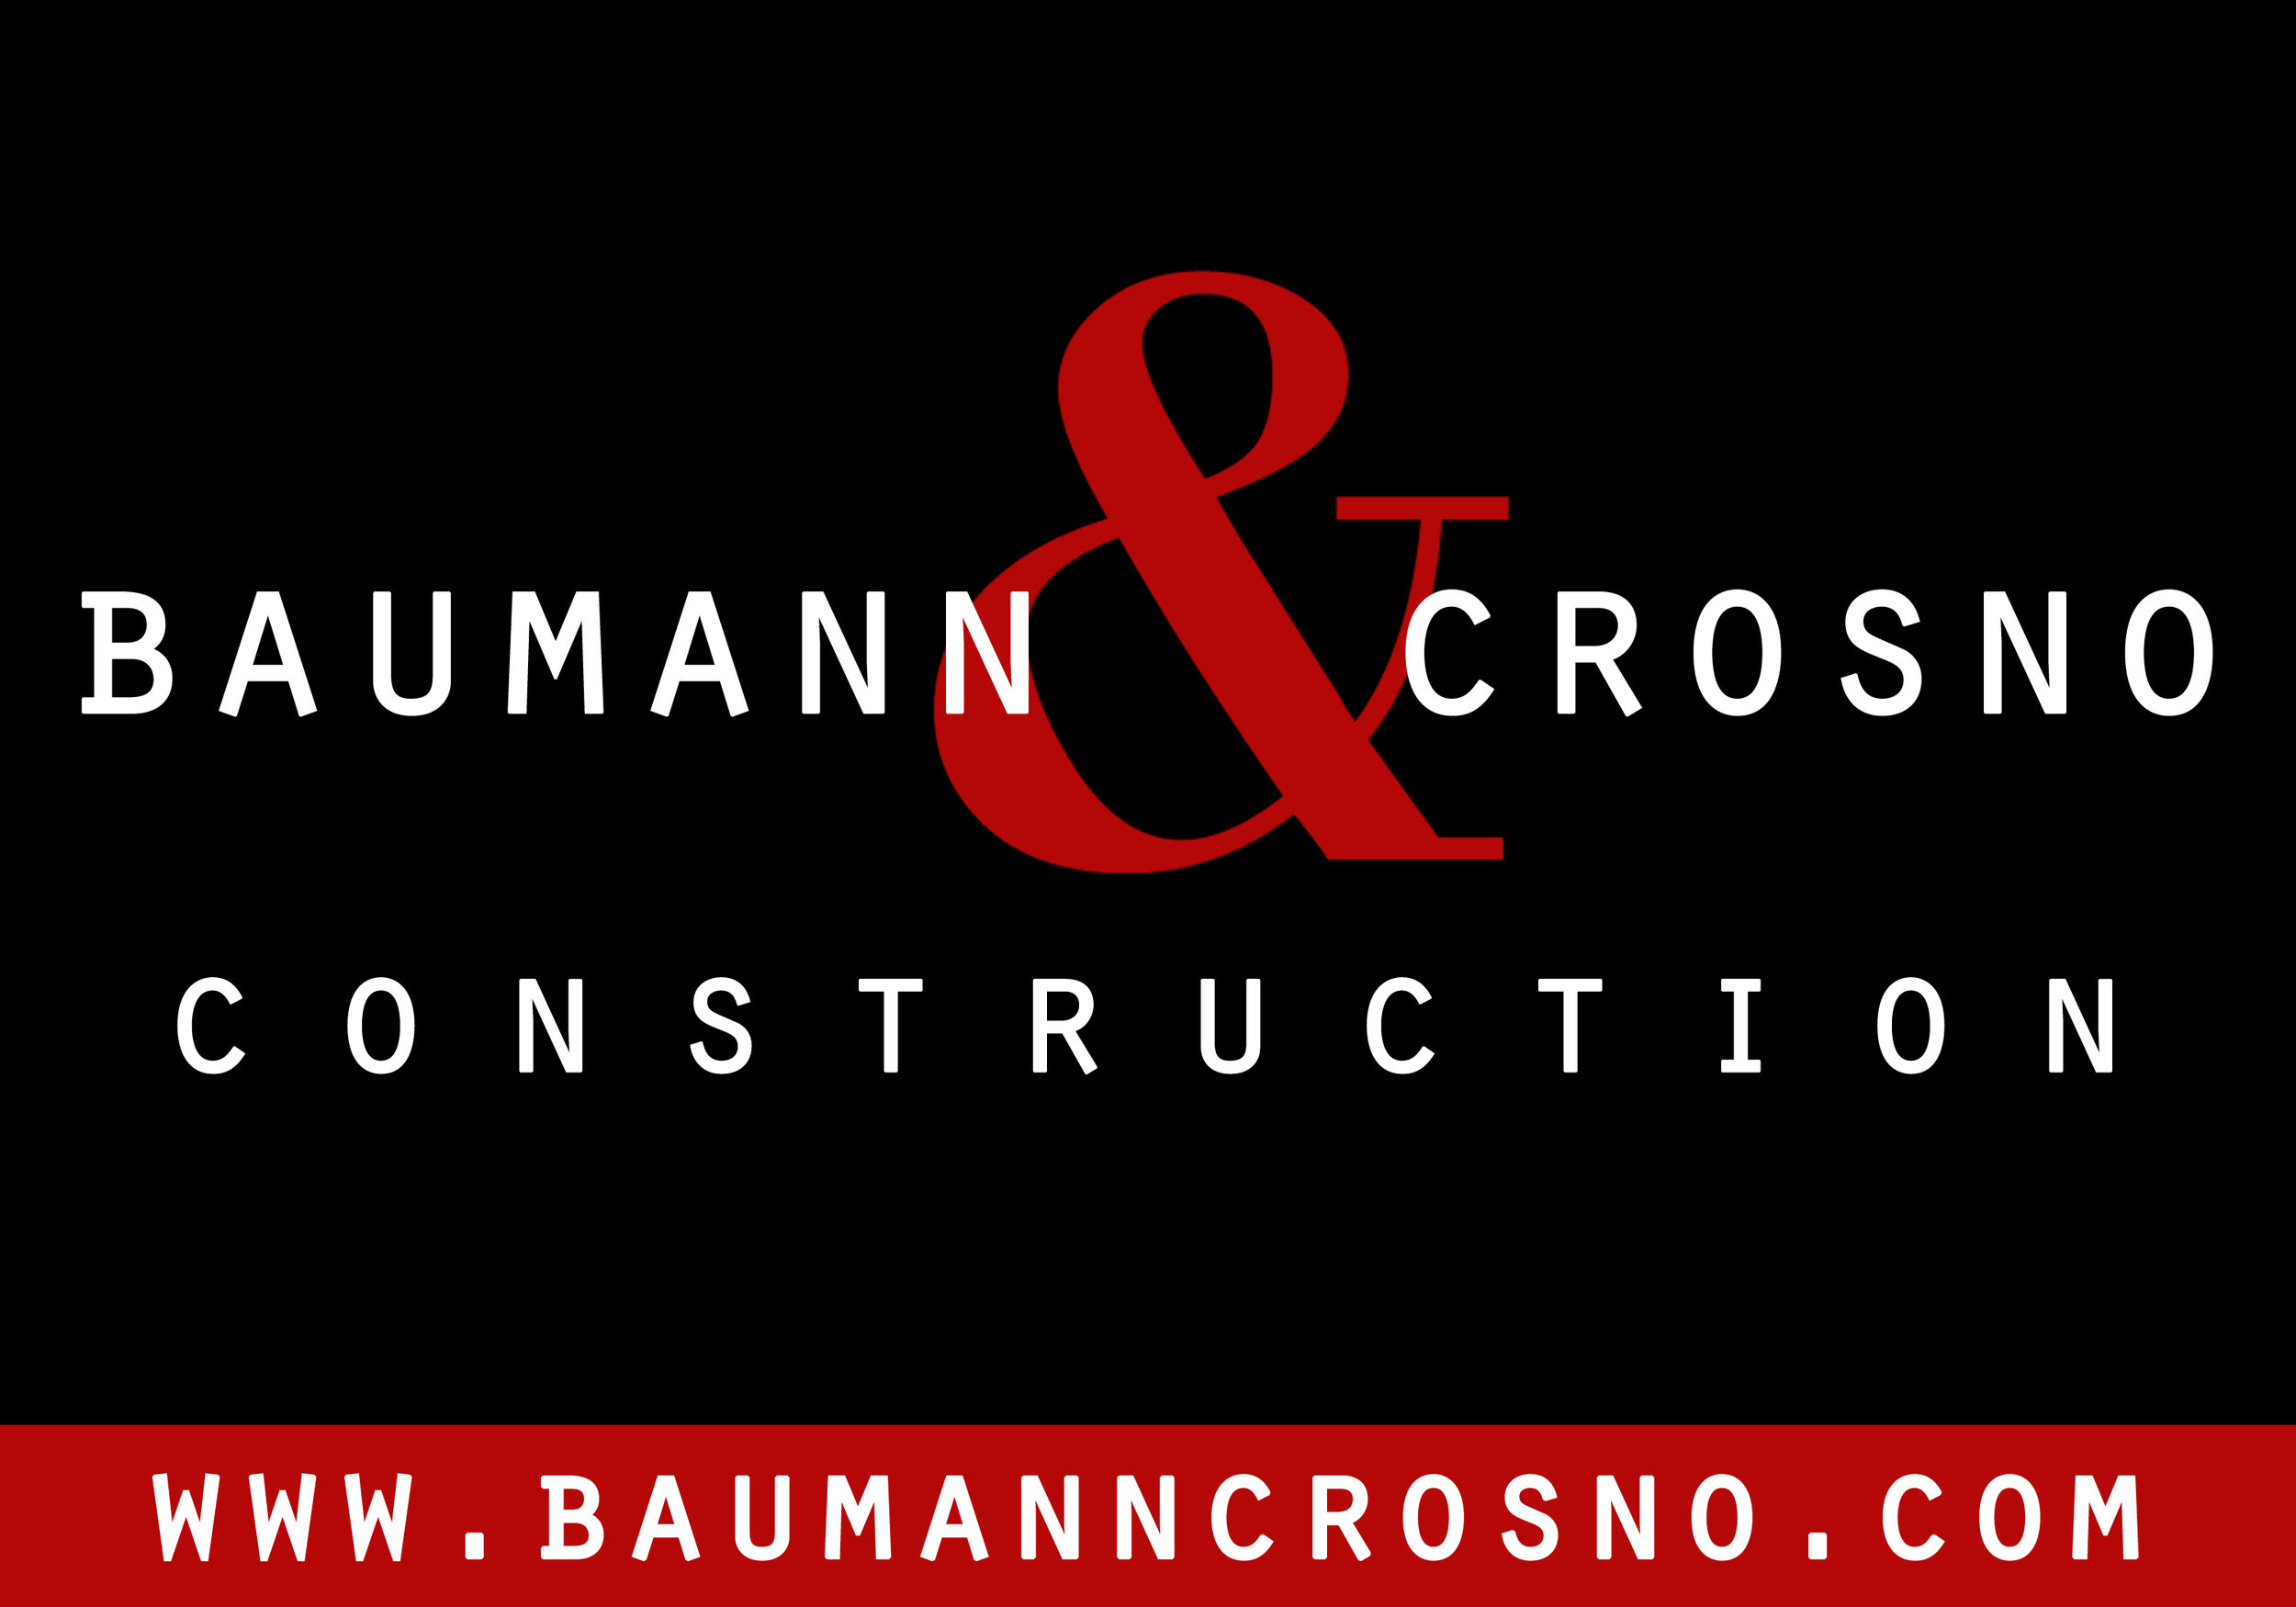 Baumann and Crosno Construction.jpg